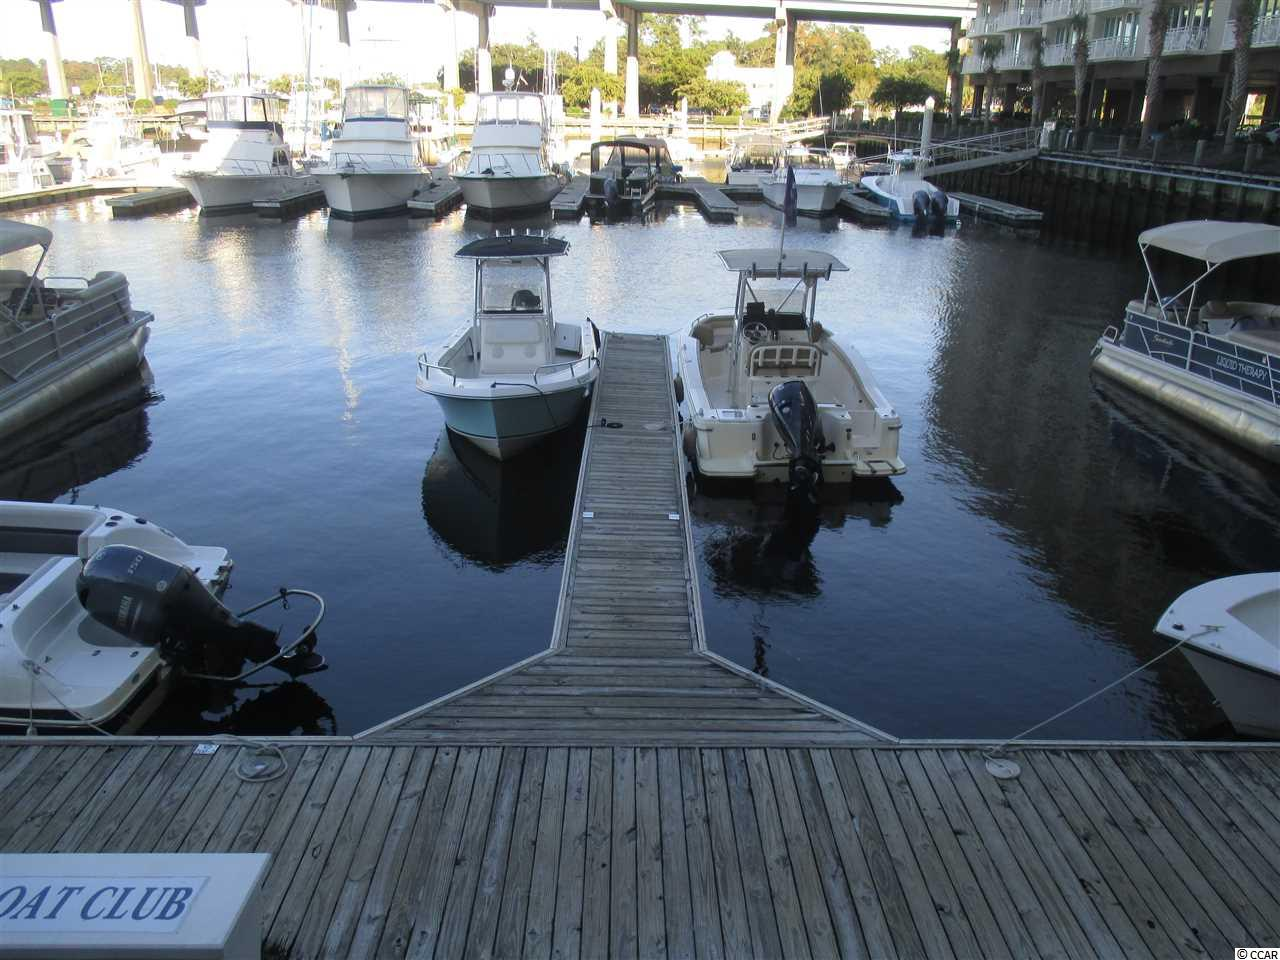 This boat slip at Harbourgate Marina is one of only two boat slips that are owned by private individuals at the same location as The Freedom Boat Club and The Harbourgate Yacht Club. Here is a once in a life time opportunity to purchase your own boat slip in one of the most popular marinas on The Grand Strand.